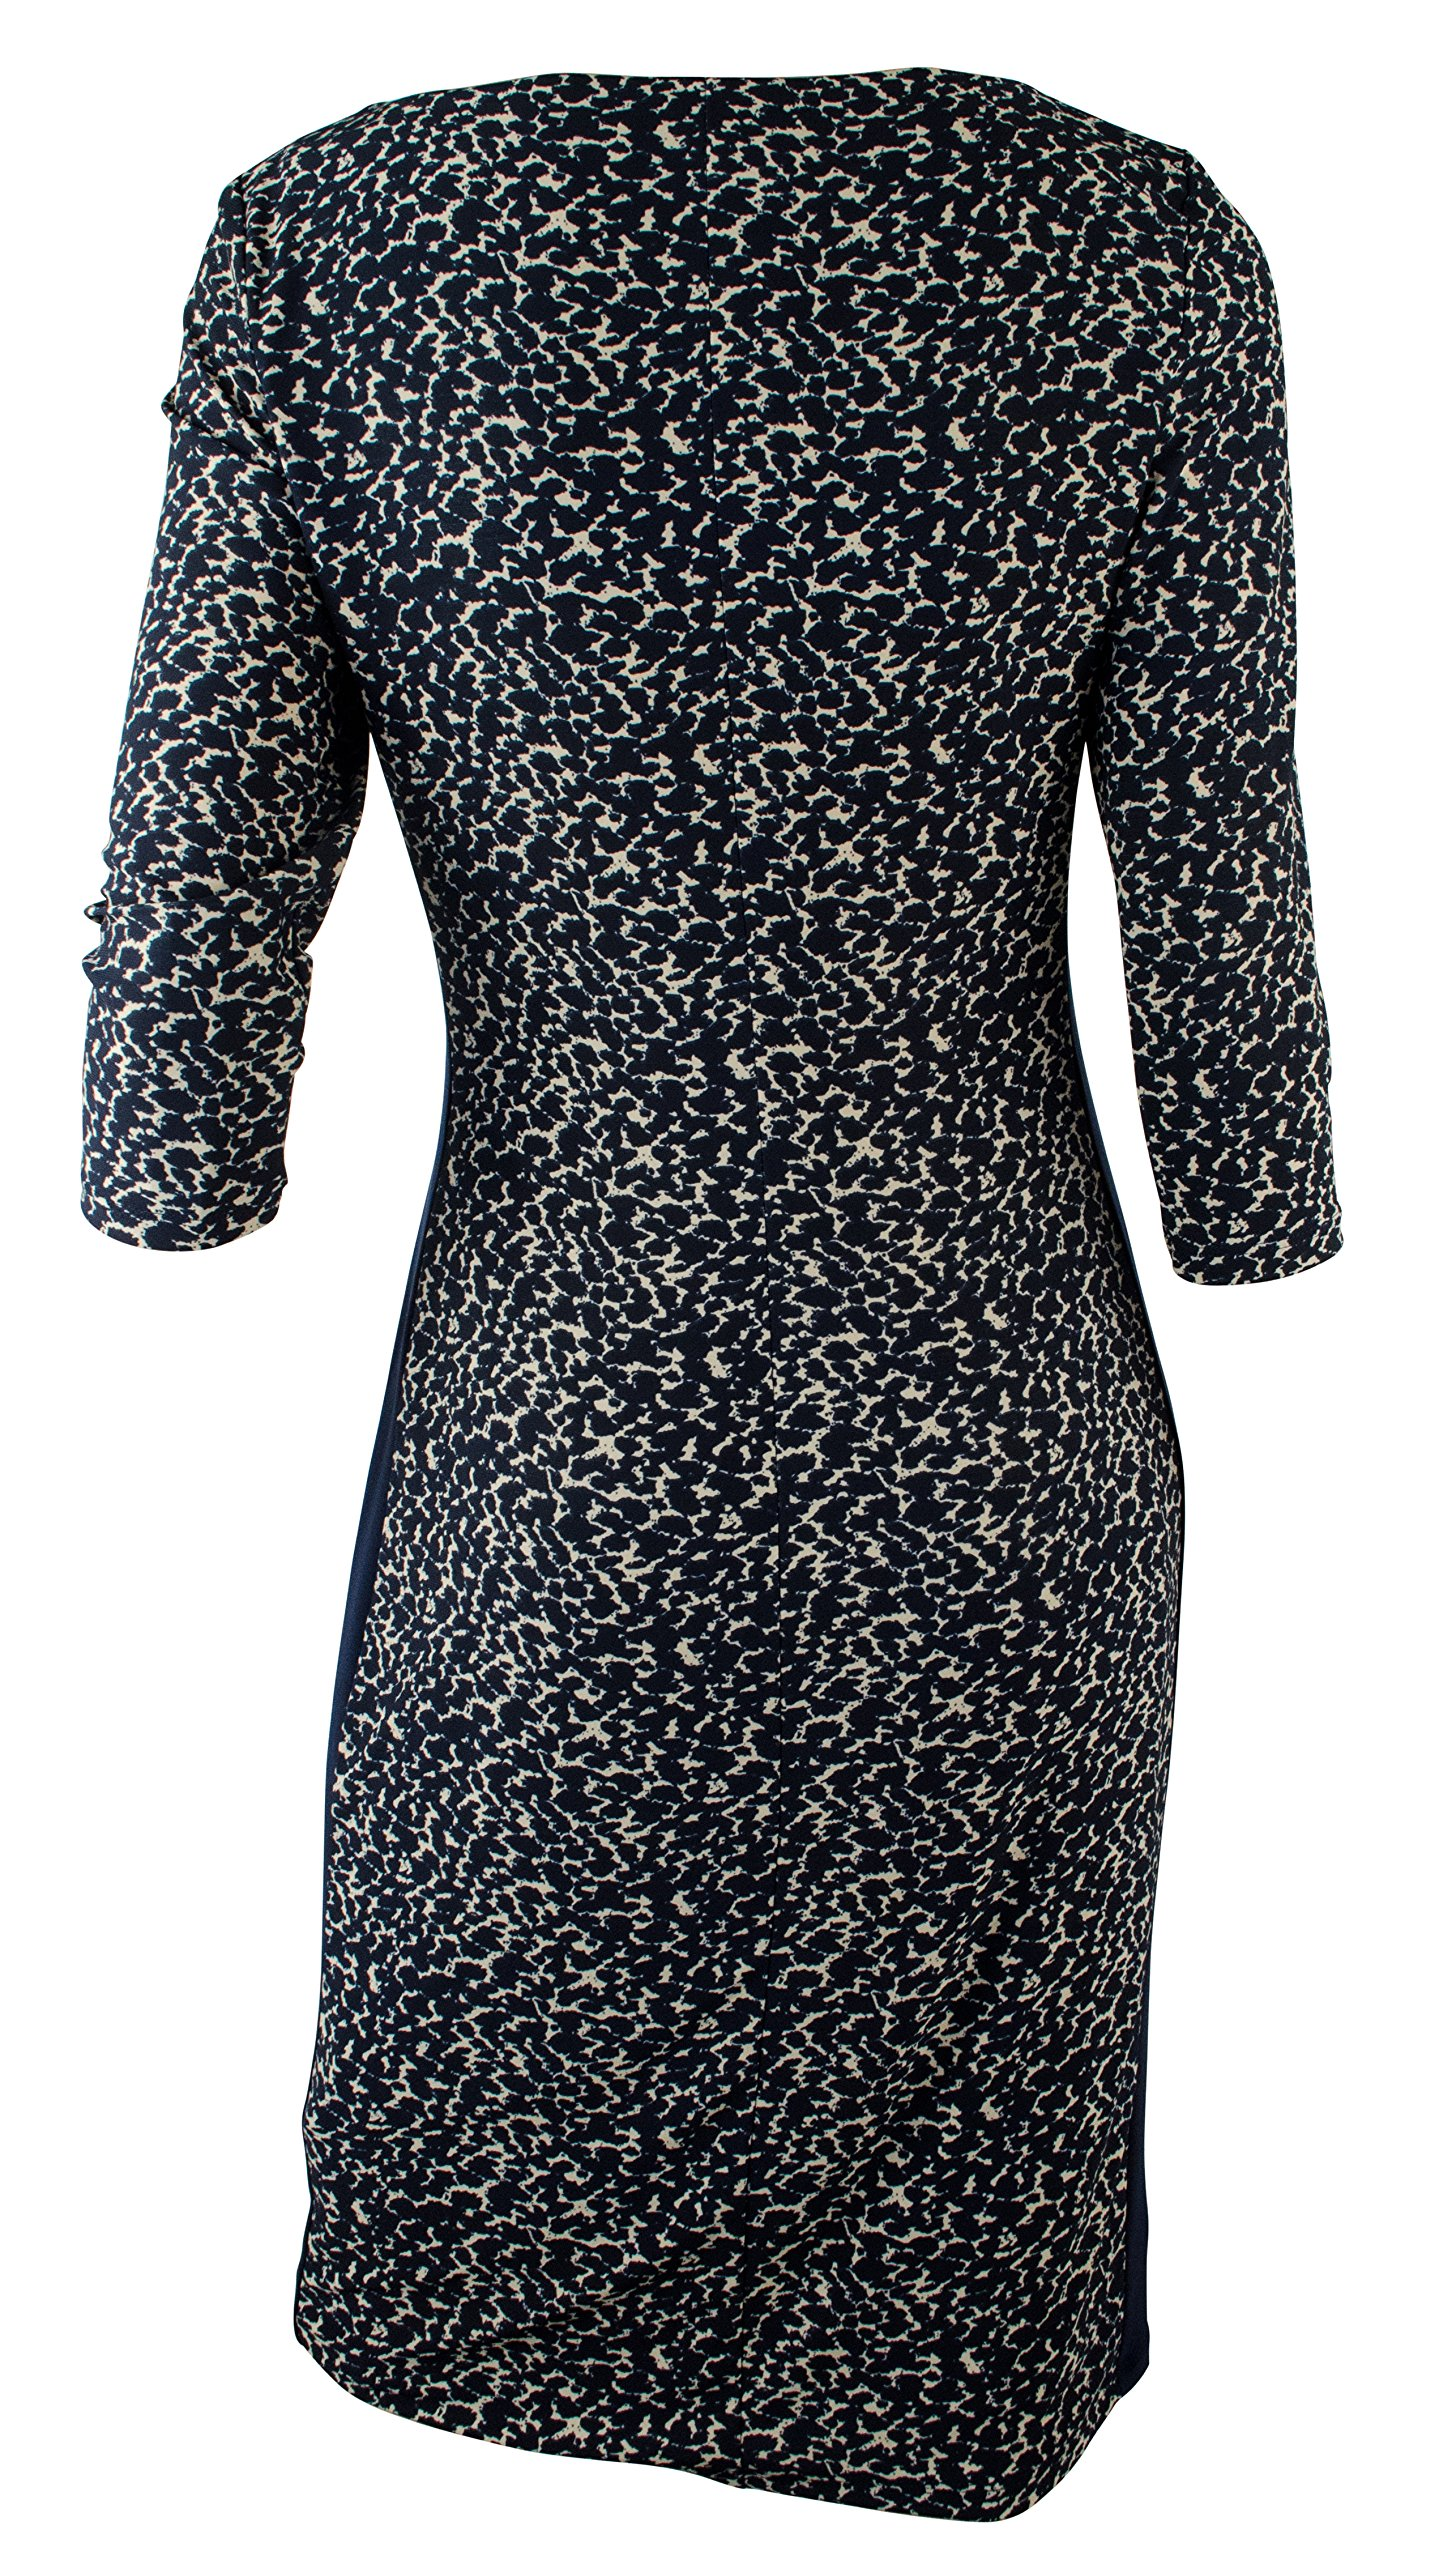 Ralph Lauren Women's Plus Print Bateau Neck Jersey Dress-BtLh-22W by RALPH LAUREN (Image #2)